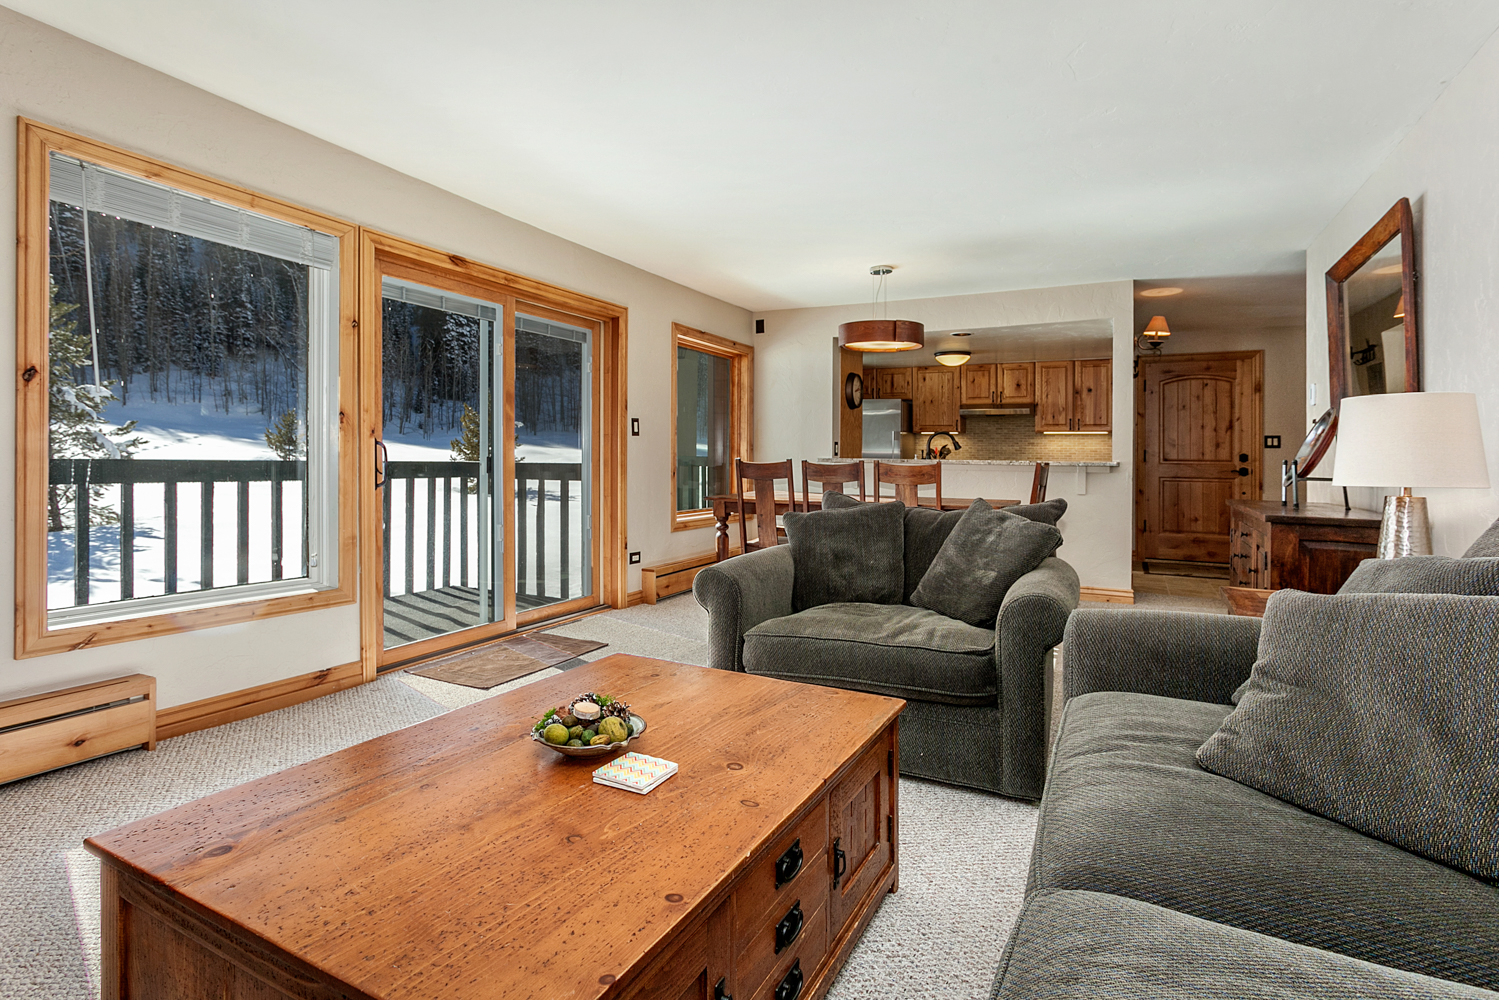 Condominium for Sale at Timber Falls Condo 4514 Timber Falls Ct #1003 East Vail, Vail, Colorado, 81657 United States